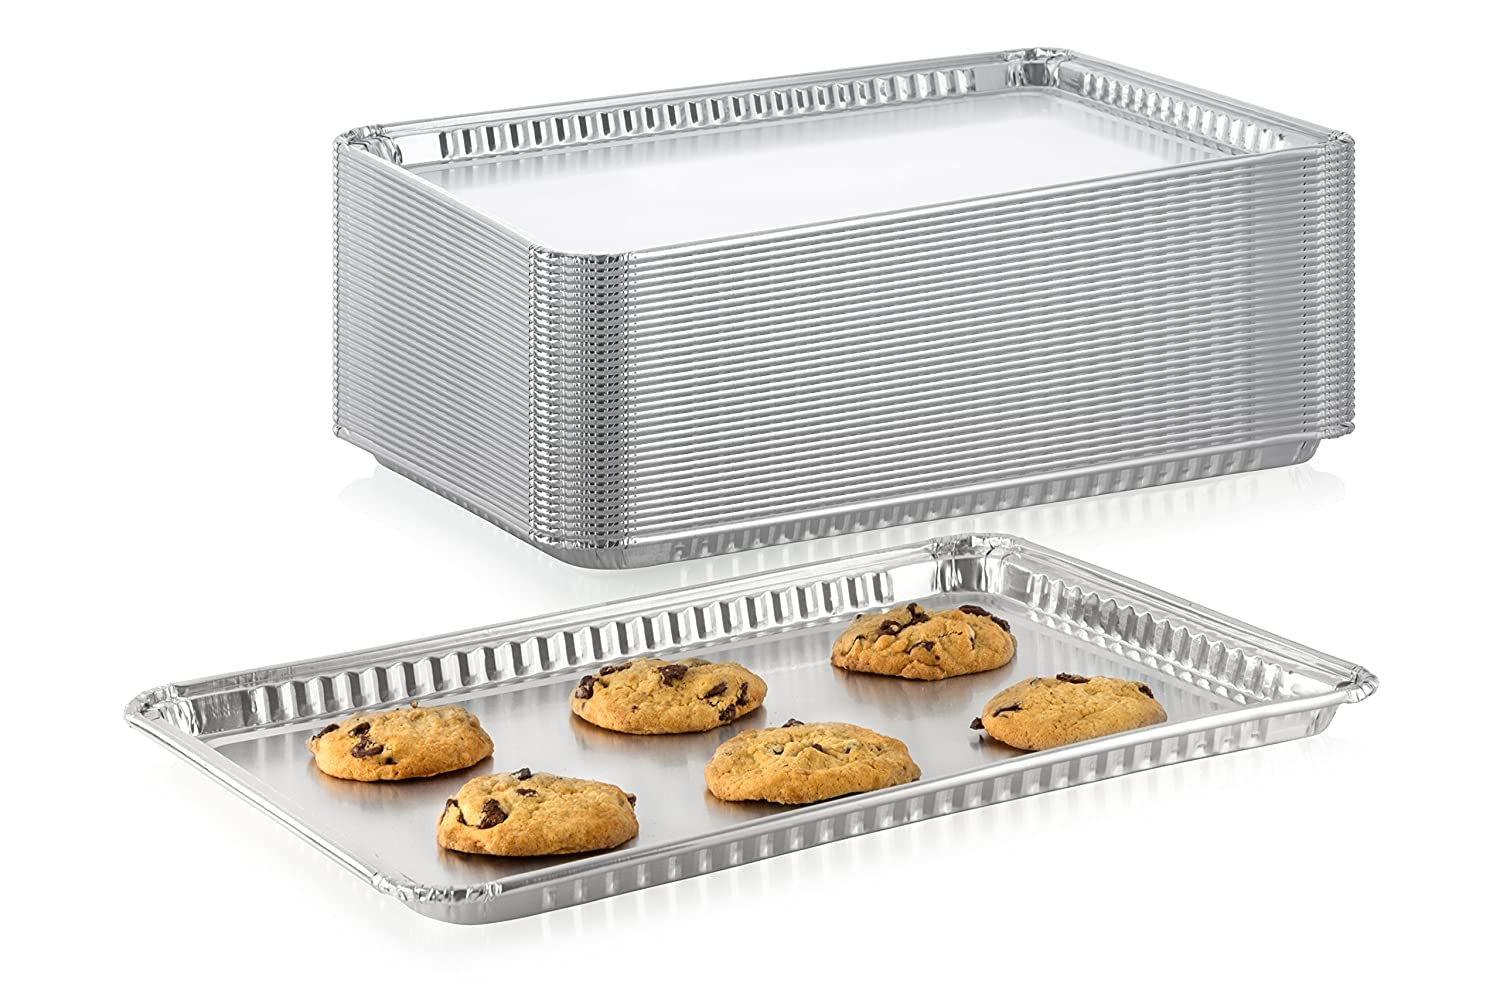 """Pack of 15 Aluminum Square Baking Pans - Disposable Foil Cooking Tins - Ideal for Brownie, Coffee Cakes, Side Dishes – Use as Portable Food Storage Container - Standard Size 16 x 11-¼ x 3/4"""" Inch DCS Deals inc."""